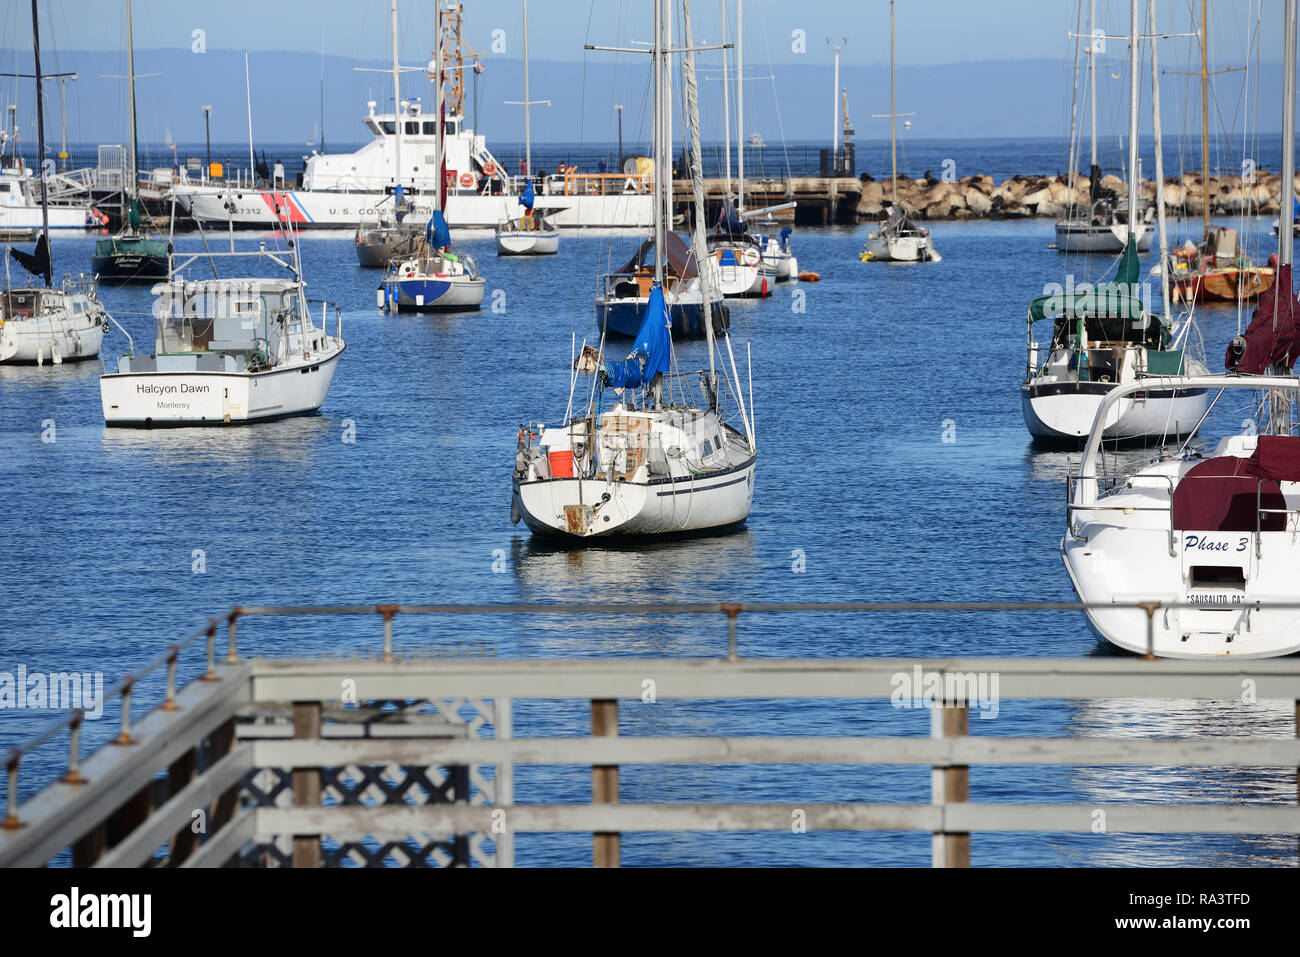 Boats in the harbor - Stock Image